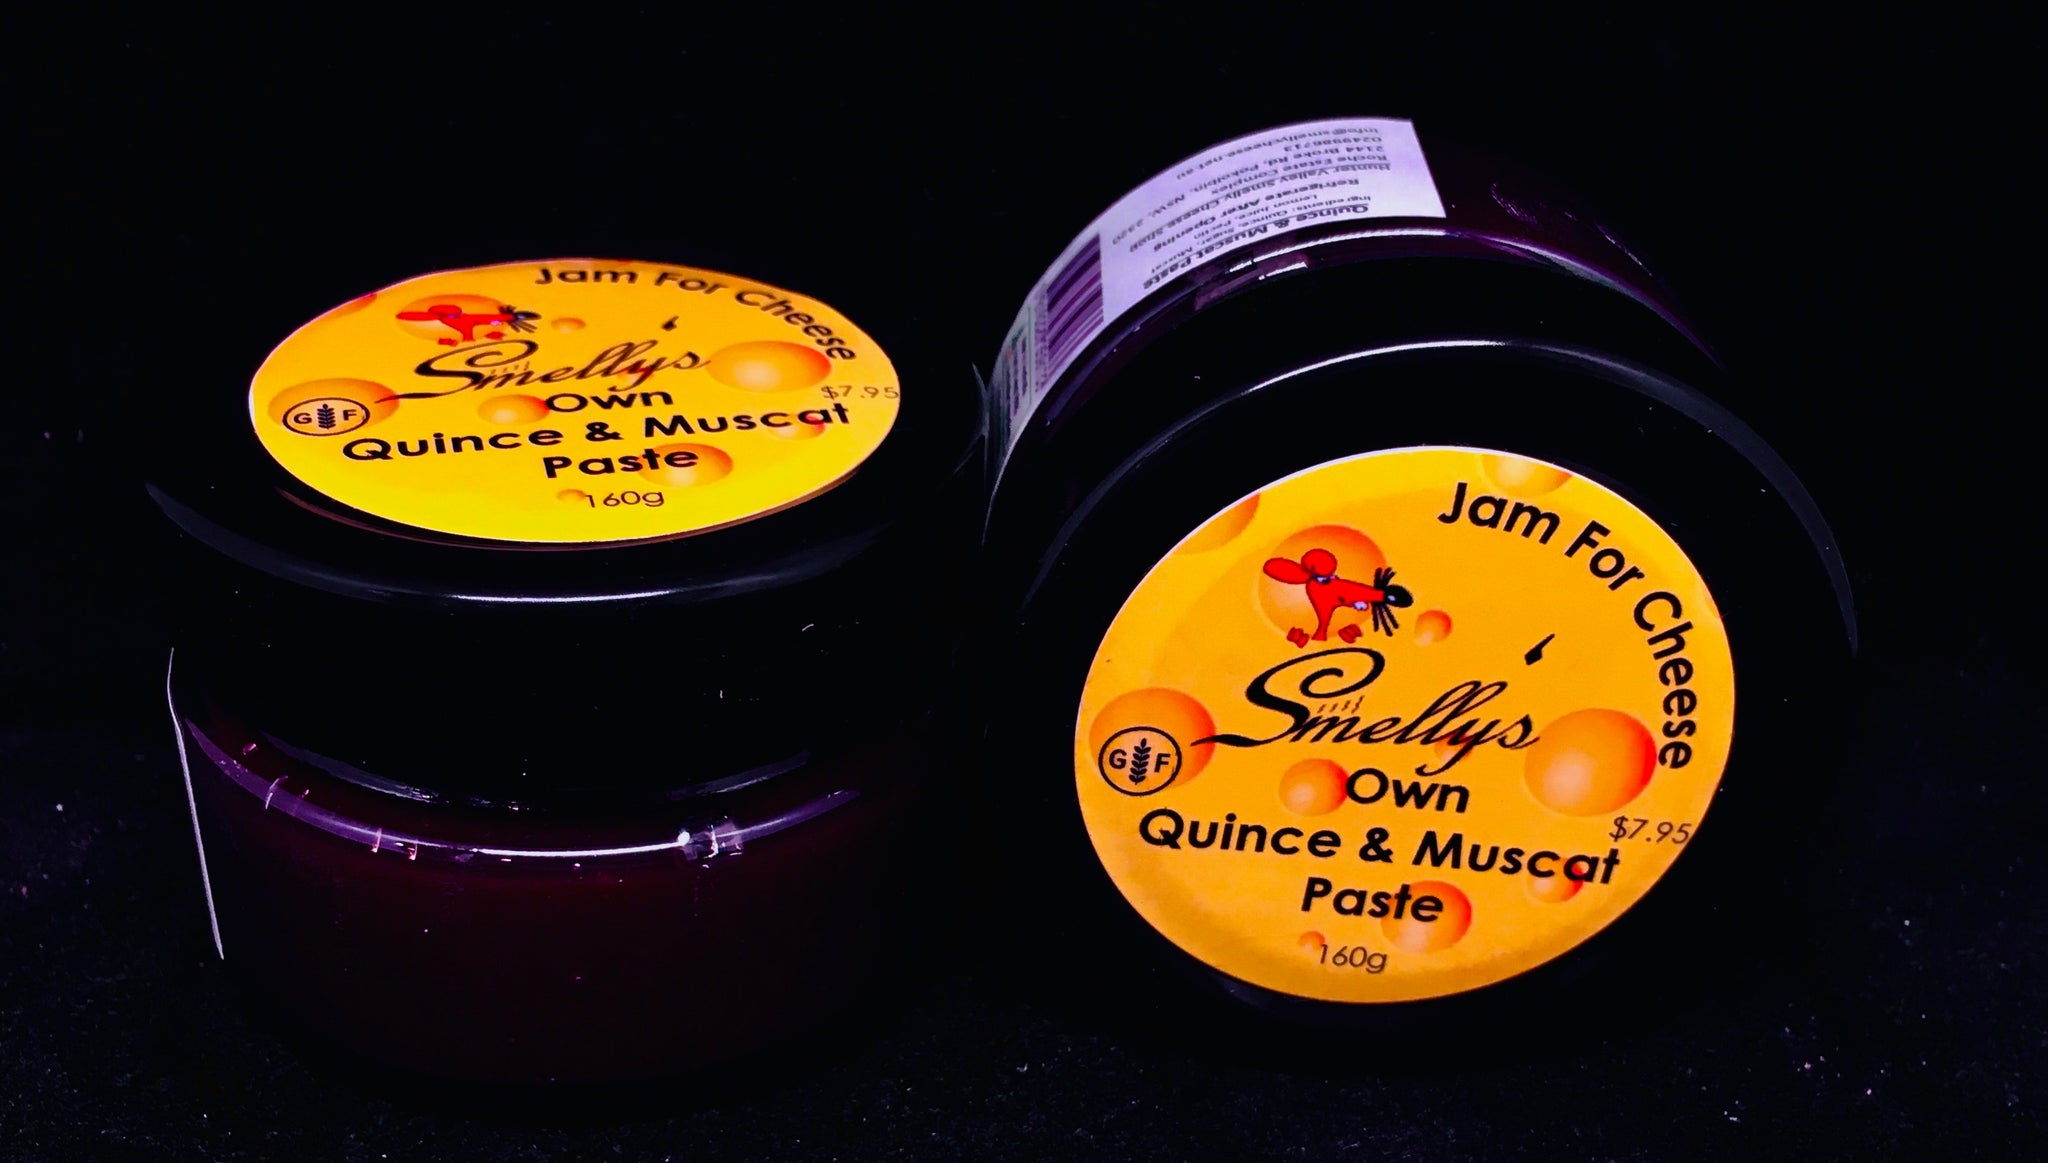 Smellys Own - Quince & Muscat Paste